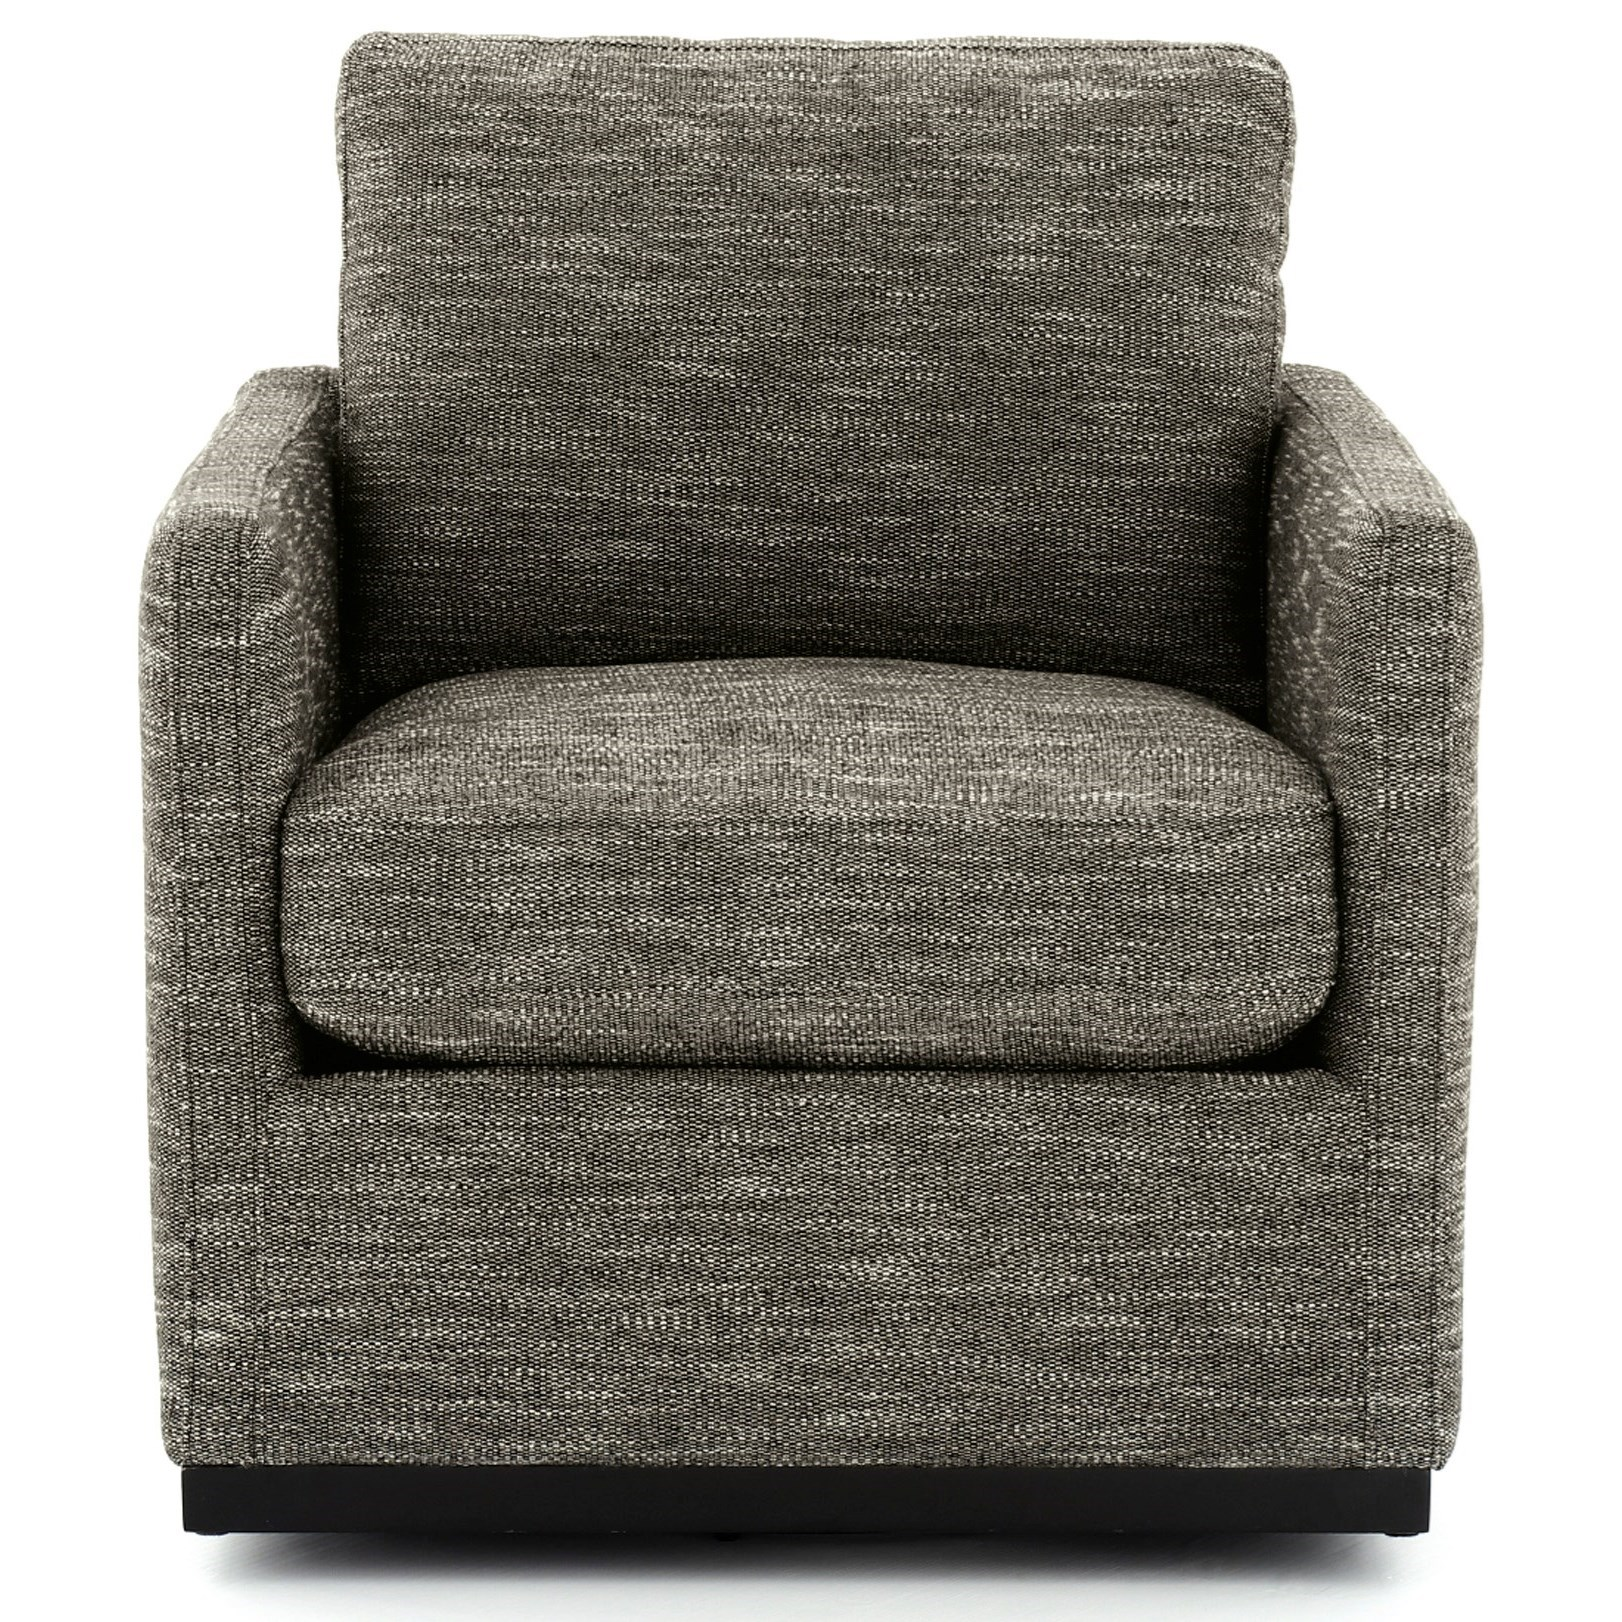 Grona Swivel Accent Chair by Ashley (Signature Design) at Johnny Janosik